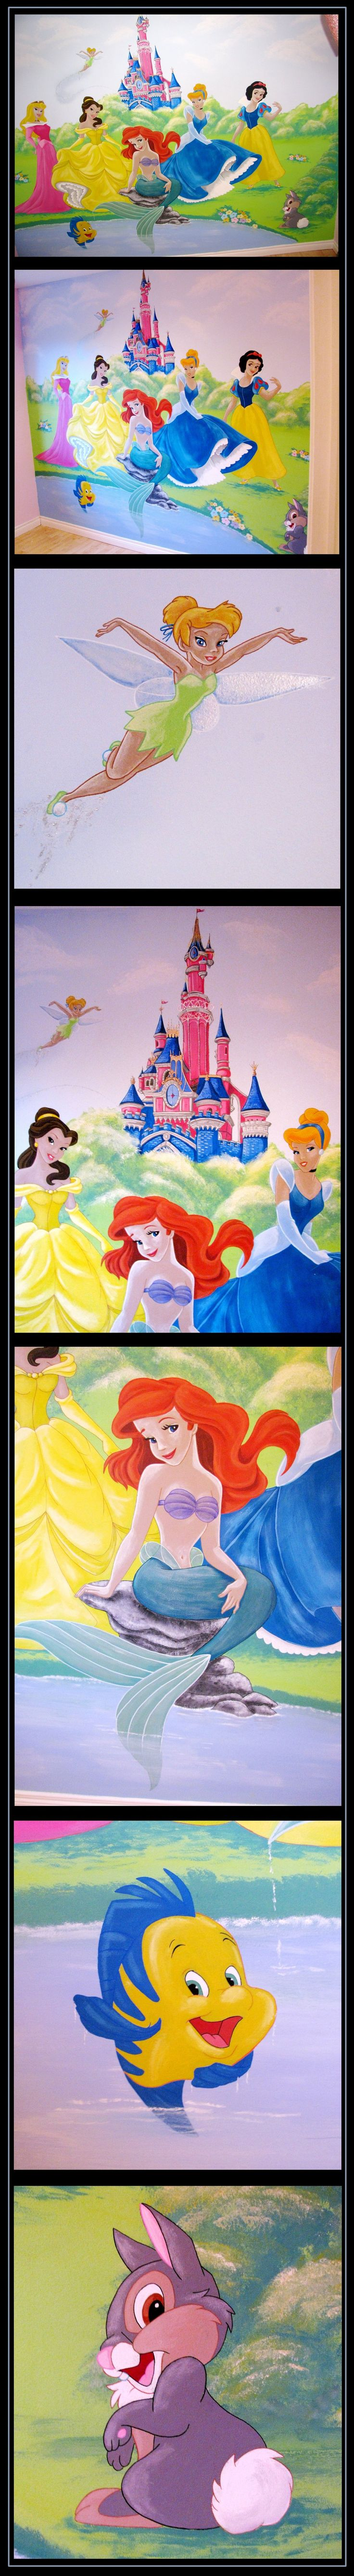 about disney princess castle big wall mural stickers room decor about disney princess castle big wall mural stickers room decor disney princess mural commission by download